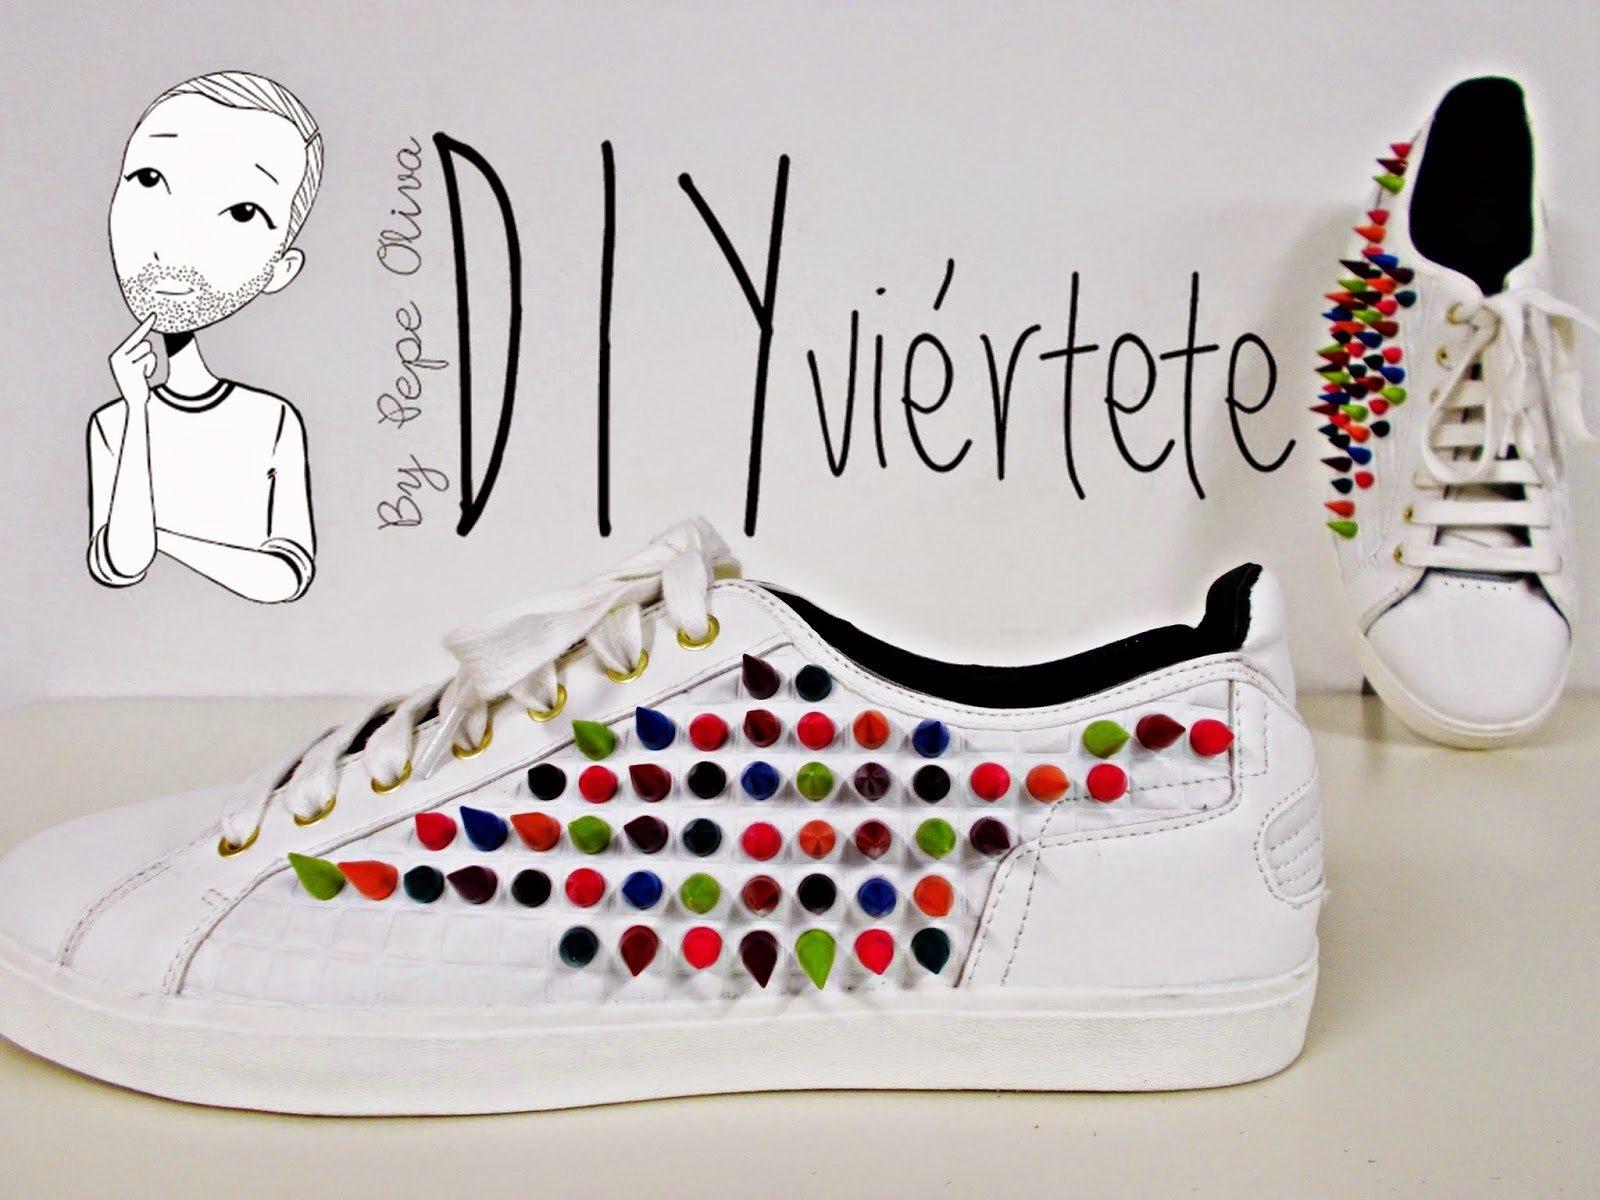 DIY-zapatillas-tunear-customizar-CHRISTIAN-LOUBOUTIN-zapatos-pinchos-esmaltes-pinta uñas-colores-2